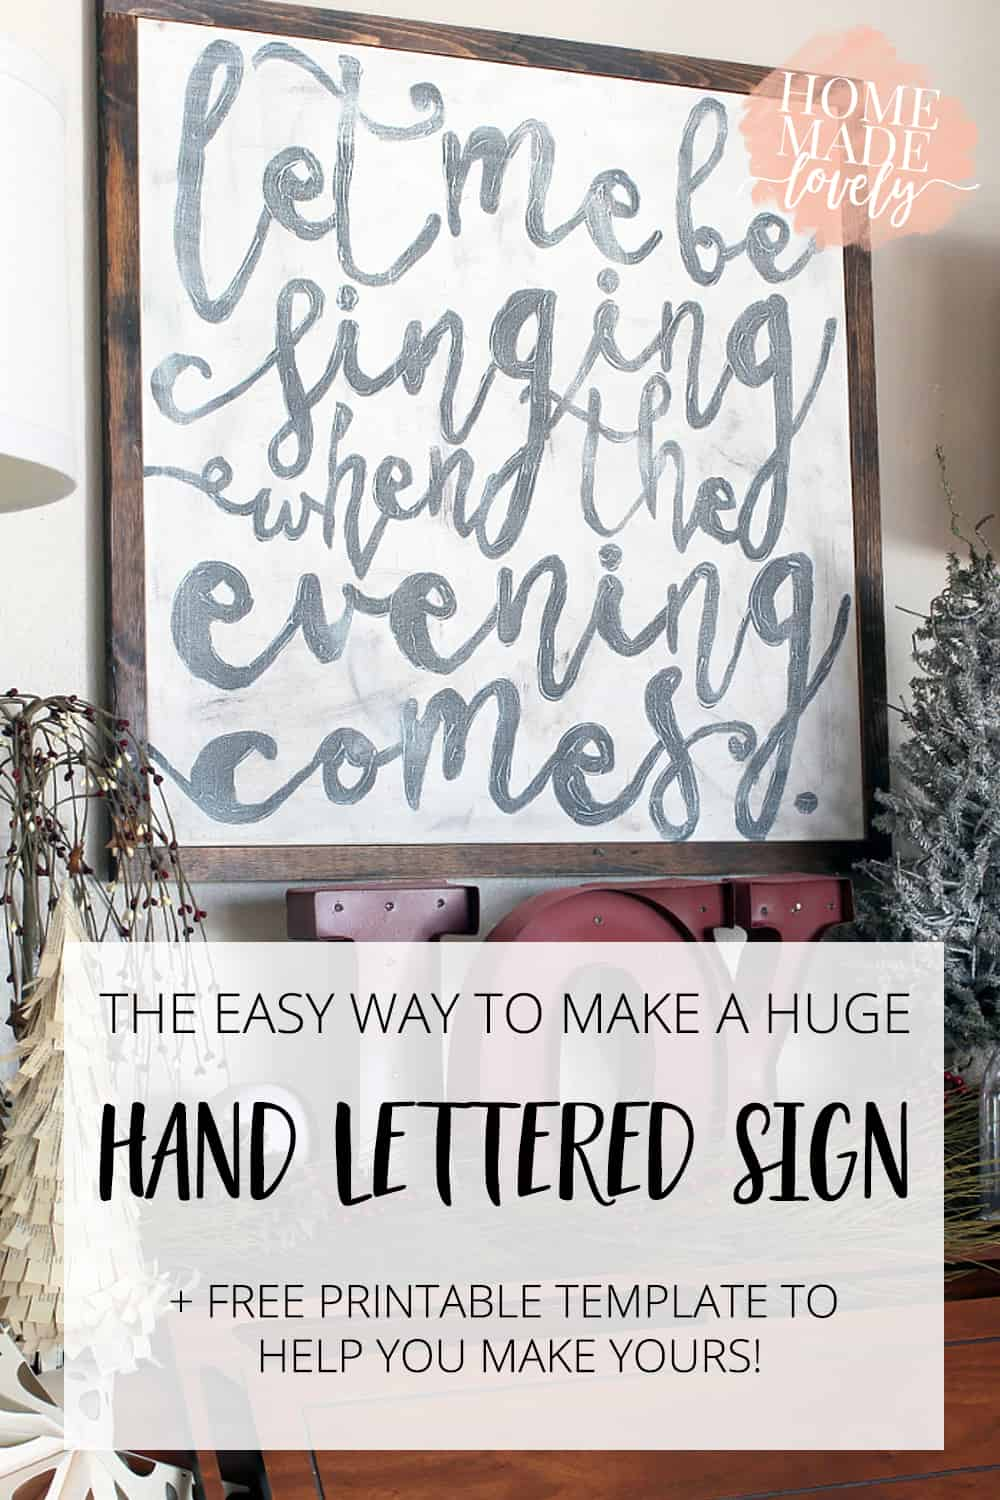 Here's the easy way to make a huge hand lettered sign, even if you have no hand lettering skills of your own! Plus a free printable template to help you!